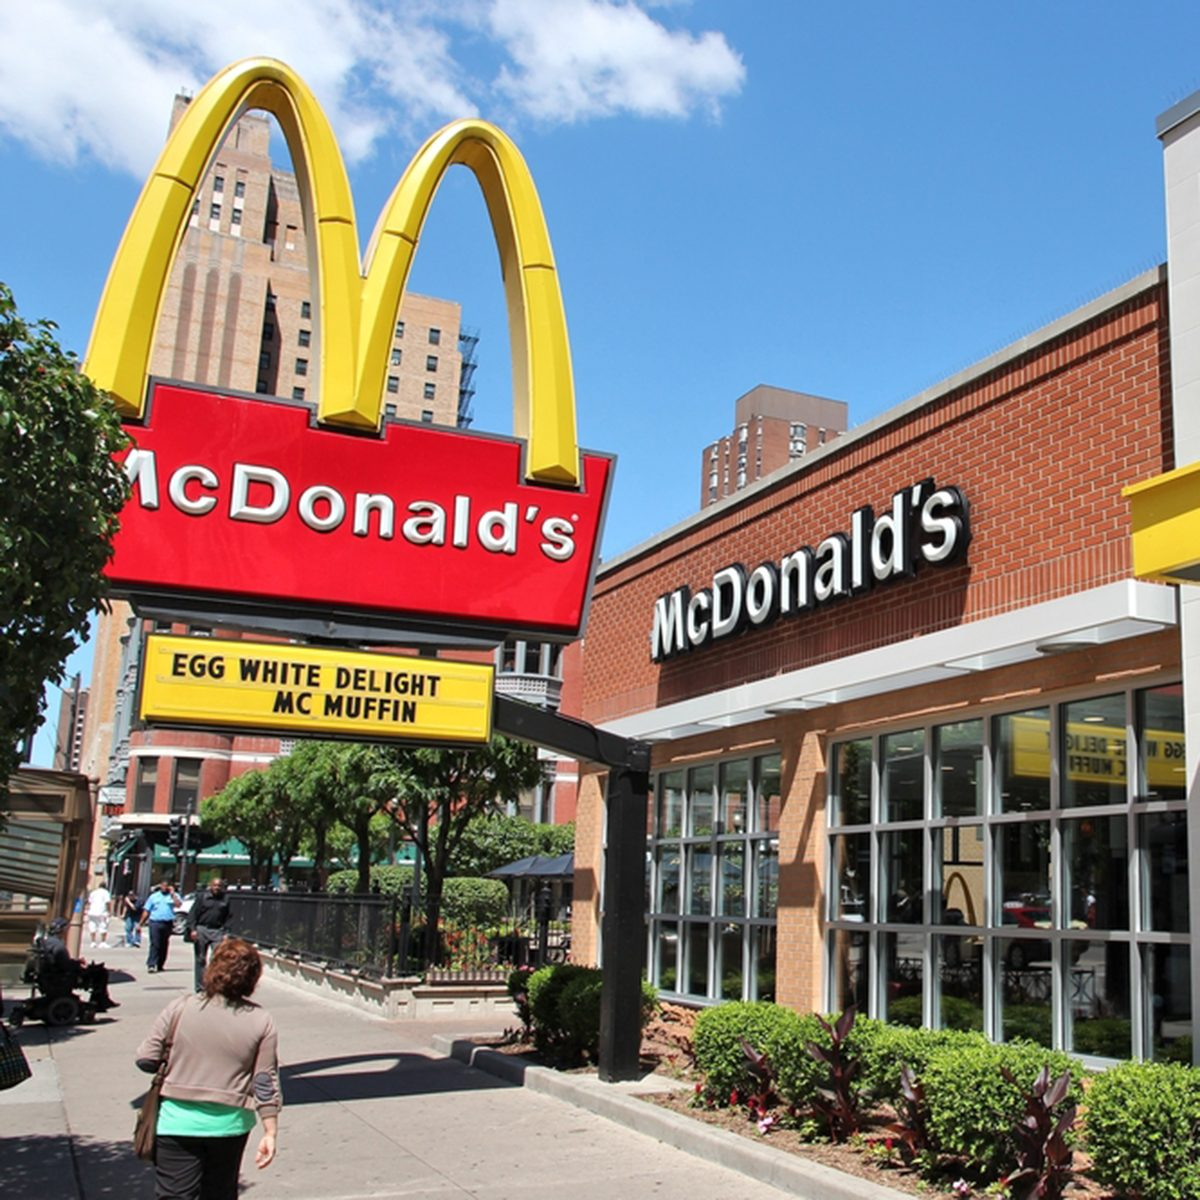 People walk by McDonald's restaurant in Chicago.